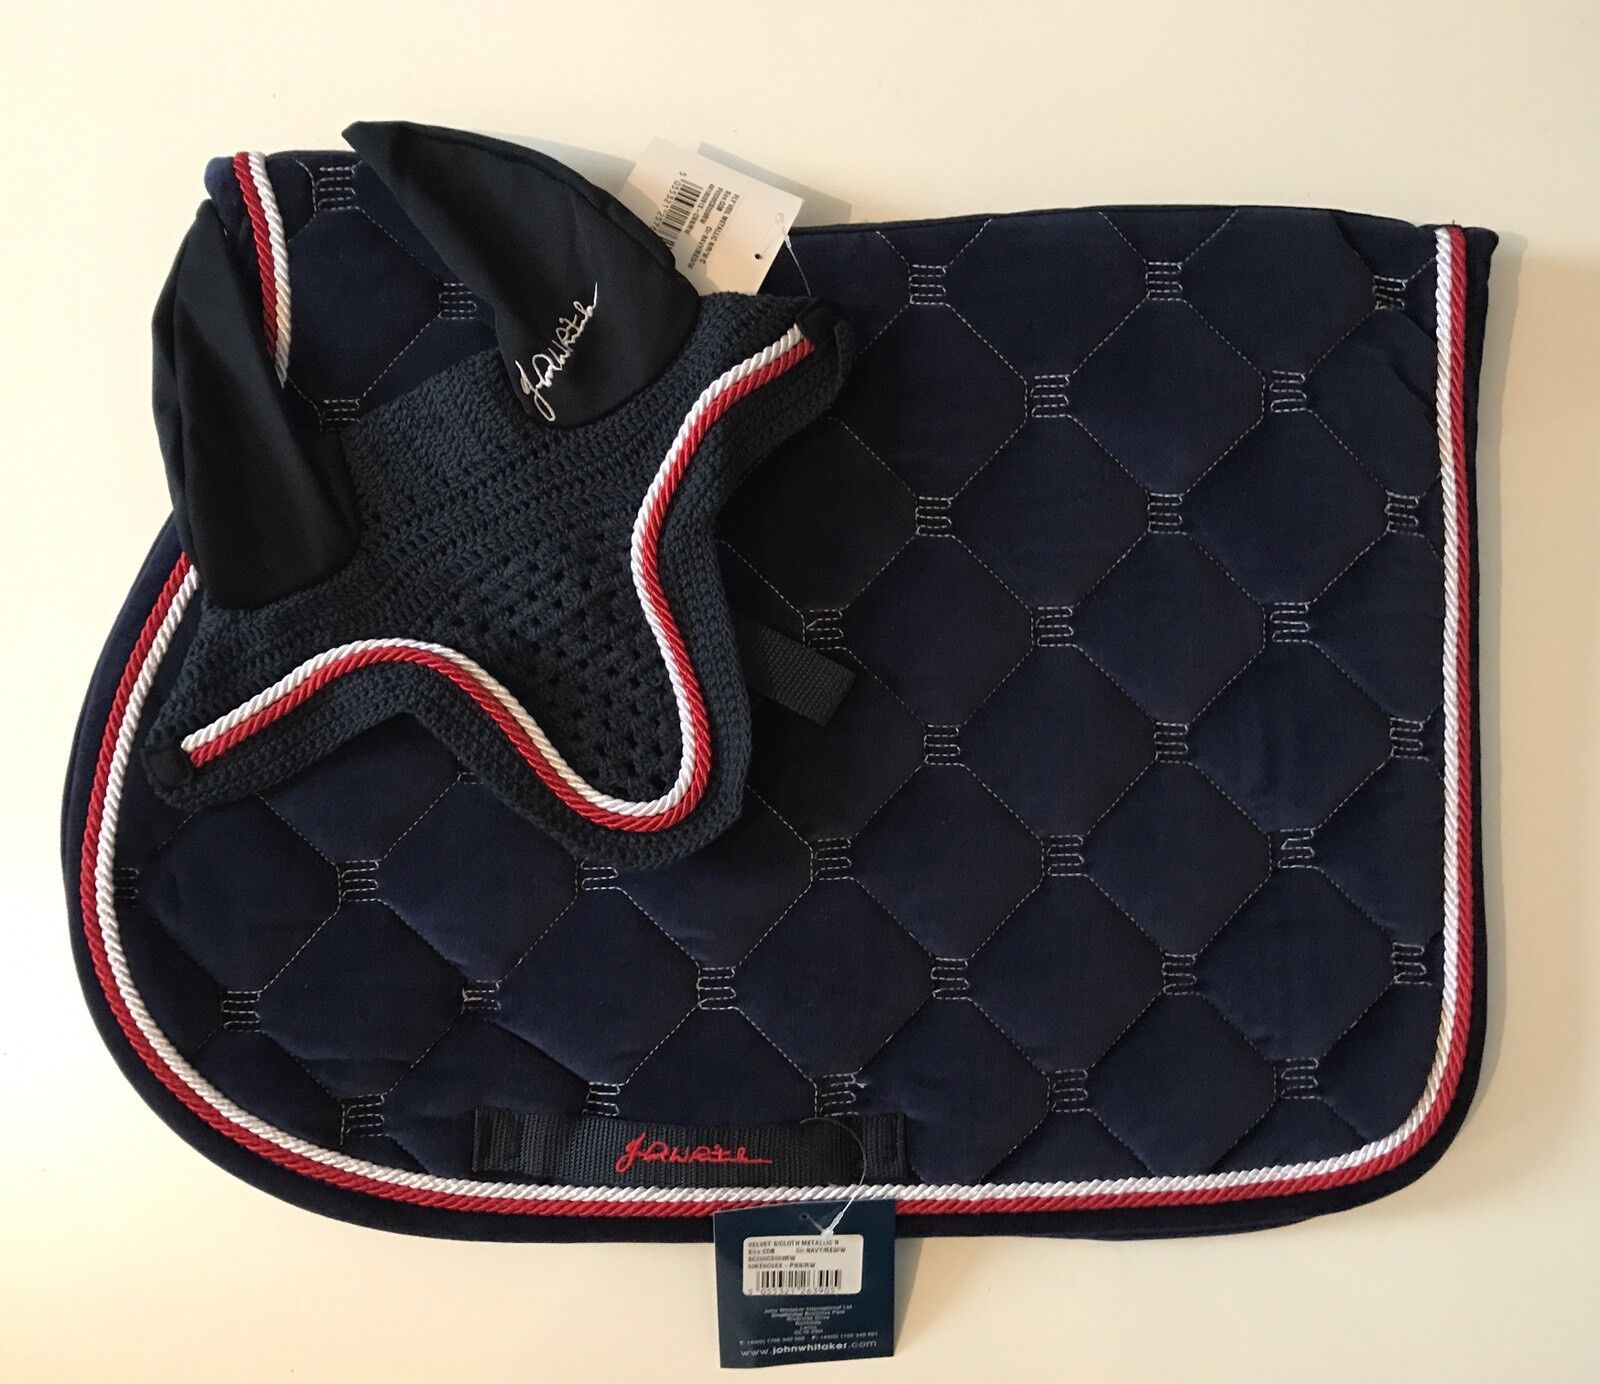 John Whitaker Métallique Velours Kitsh Kitsh Set-SADDLEPAD-Fly Veil-Full, navy-FPP